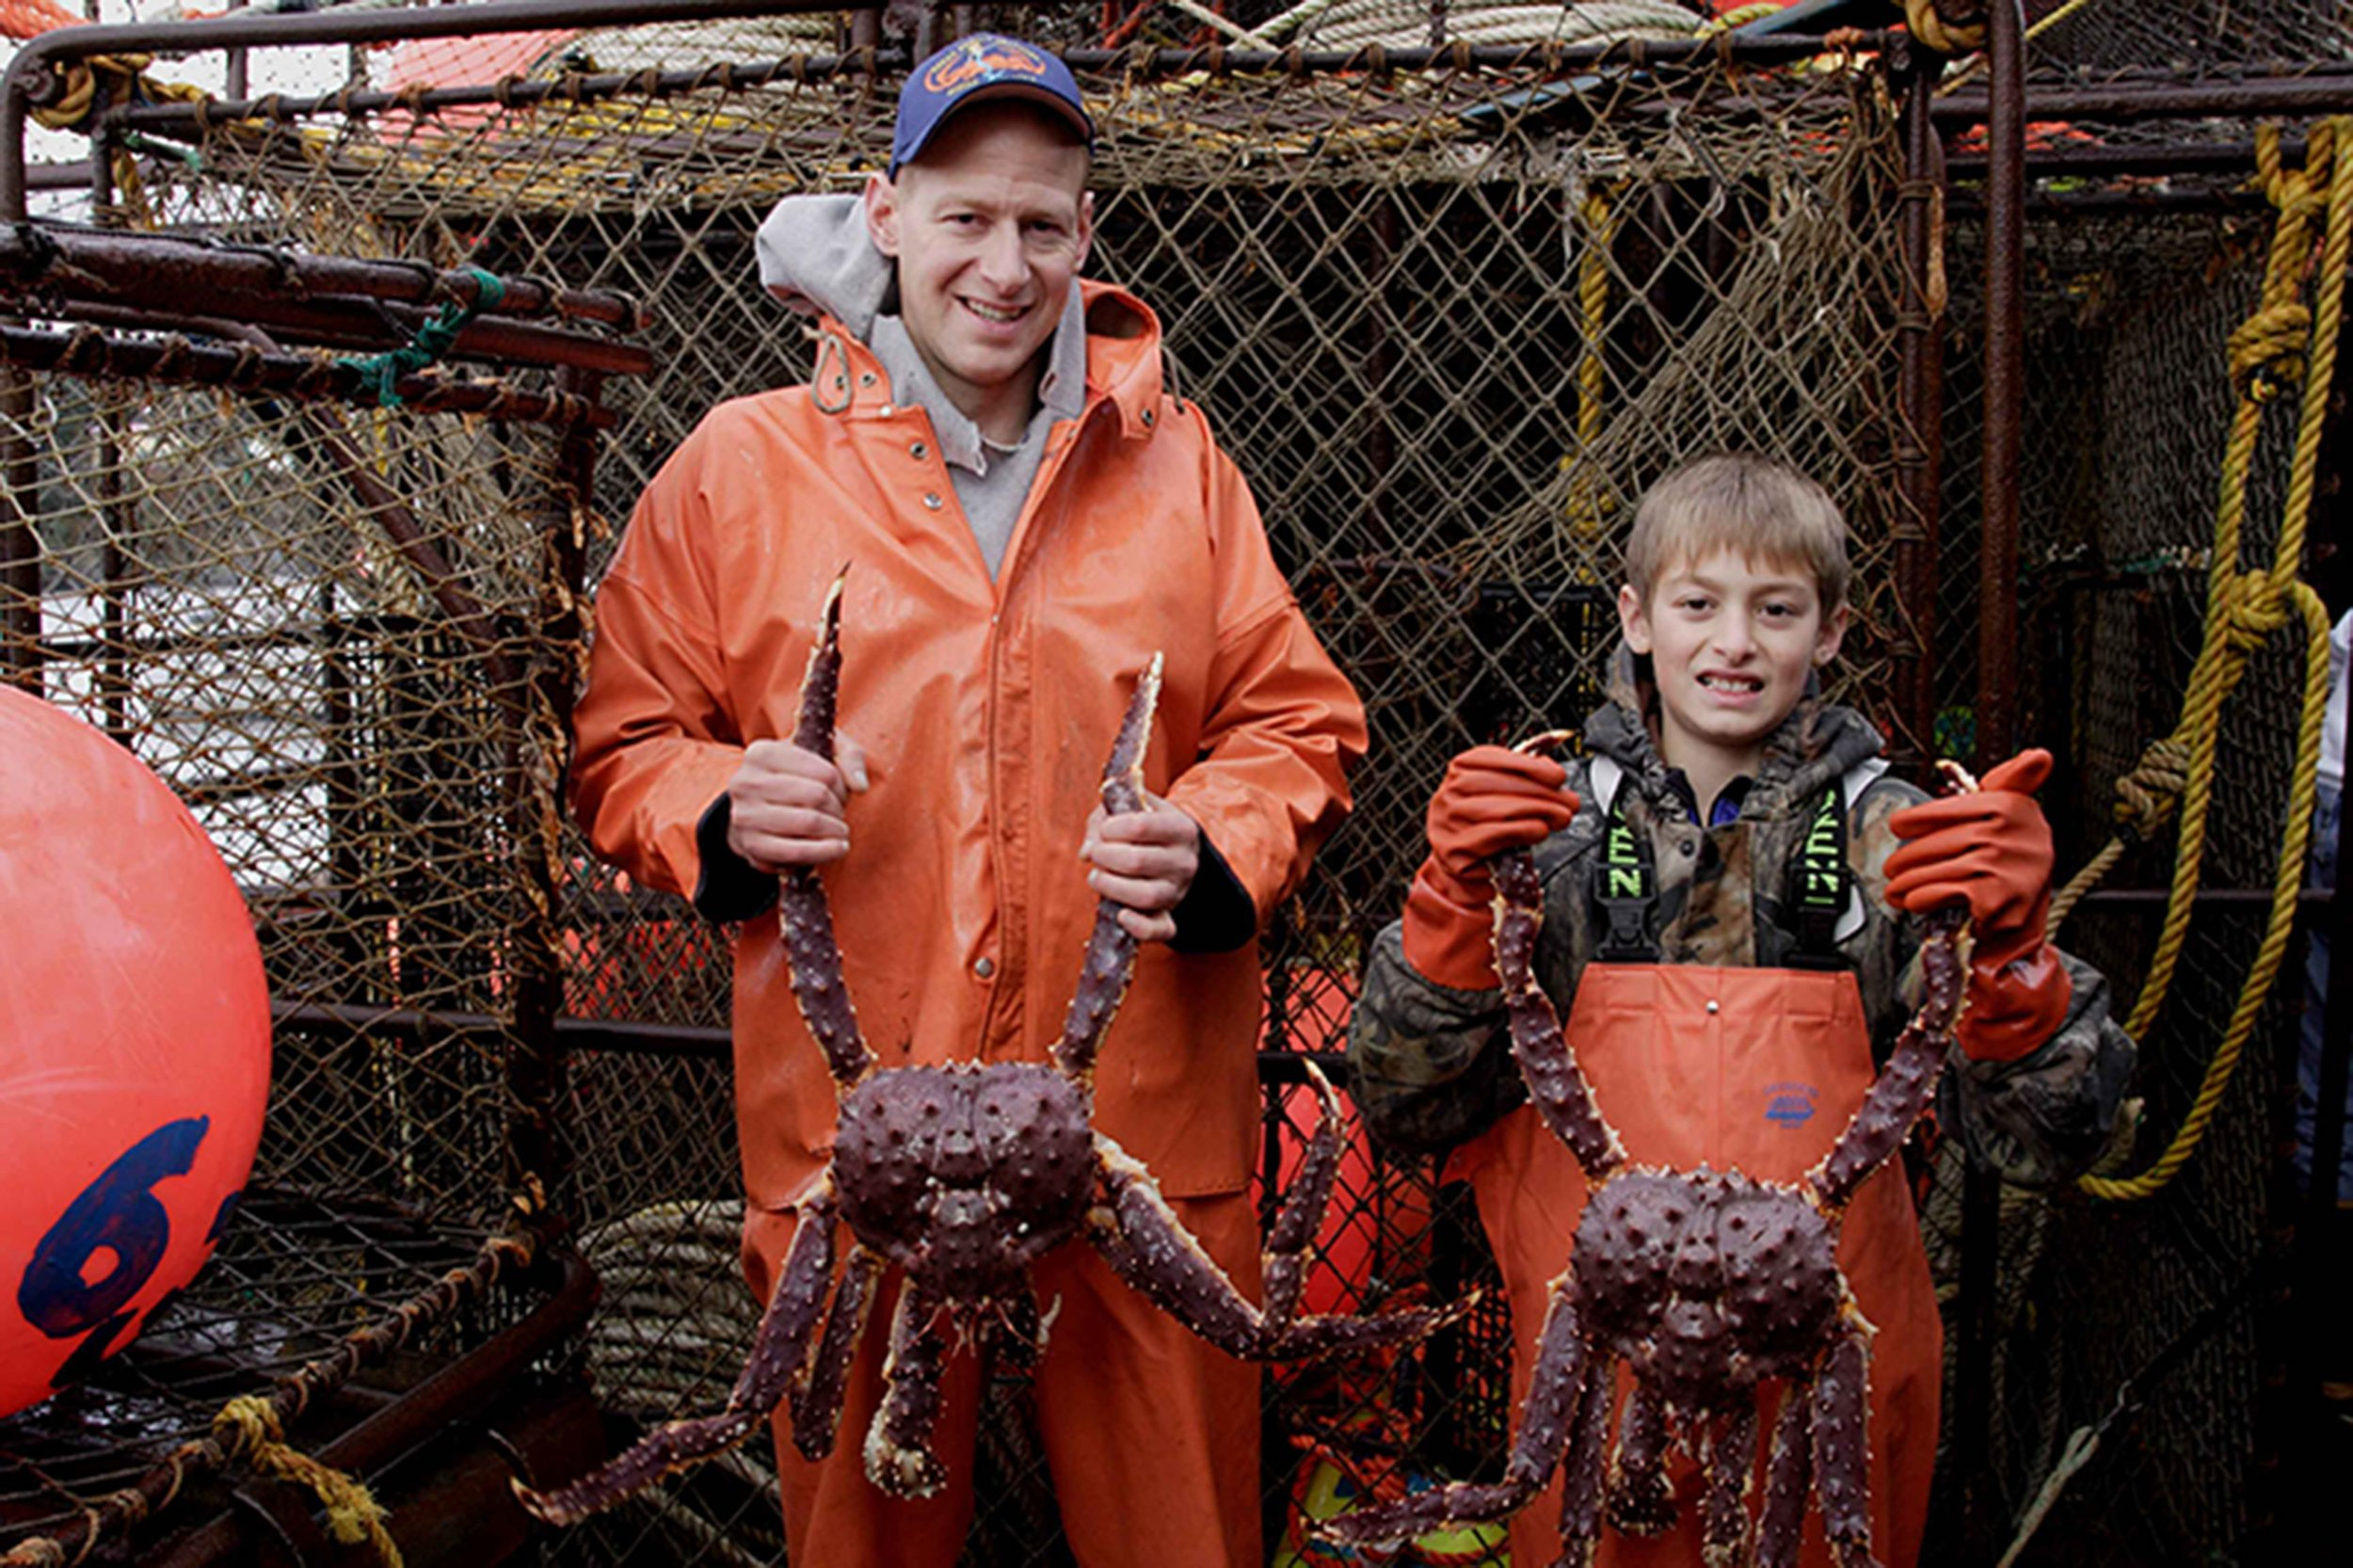 King Crabs are a family affair